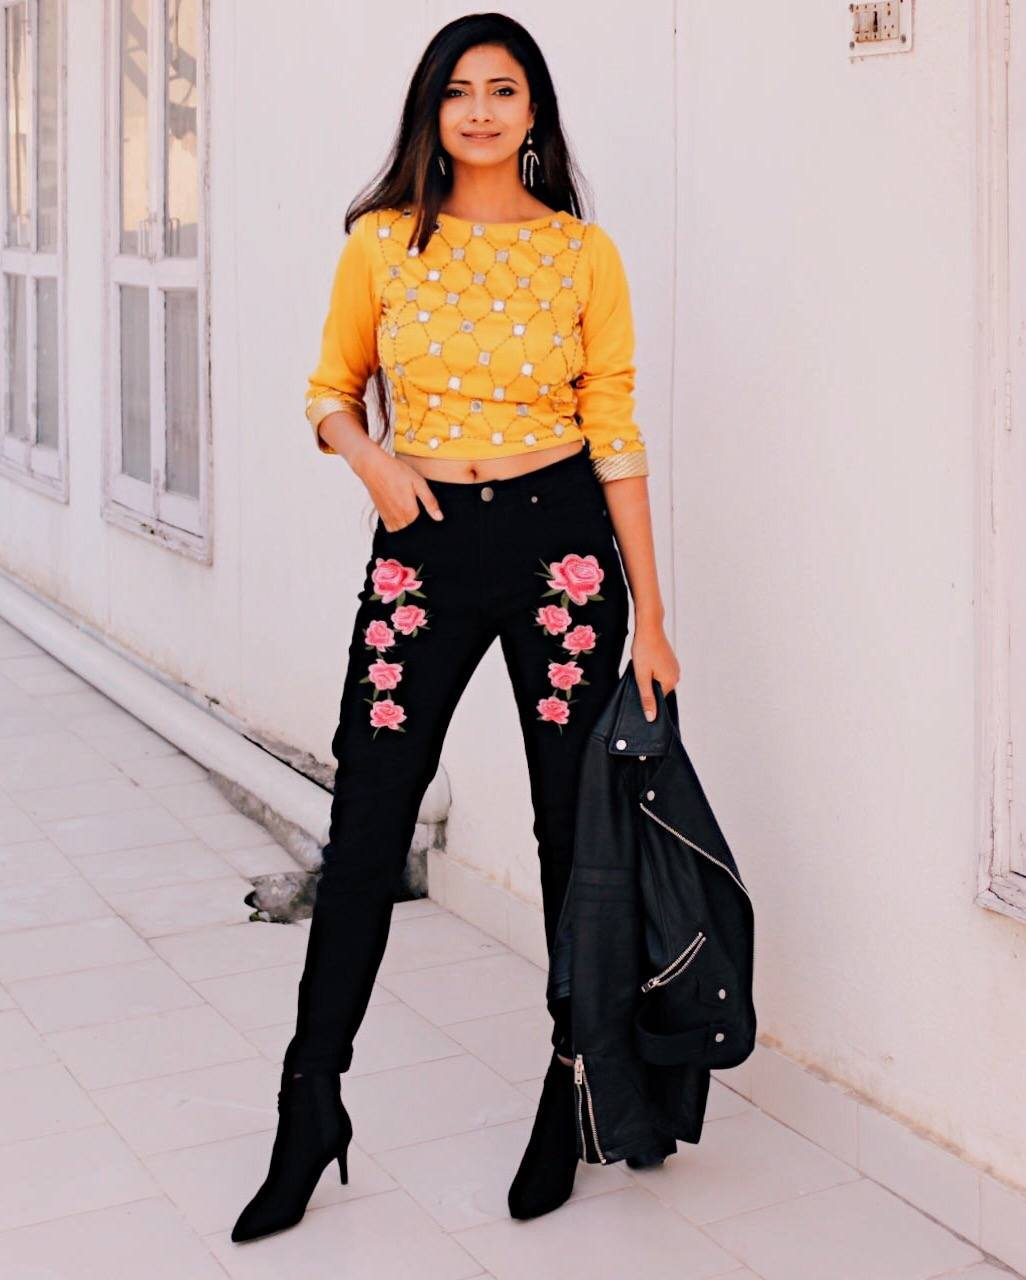 How to Wear Embroidered Jeans16 Embroidered Jeans Outfits How to Wear Embroidered Jeans16 Embroidered Jeans Outfits new foto